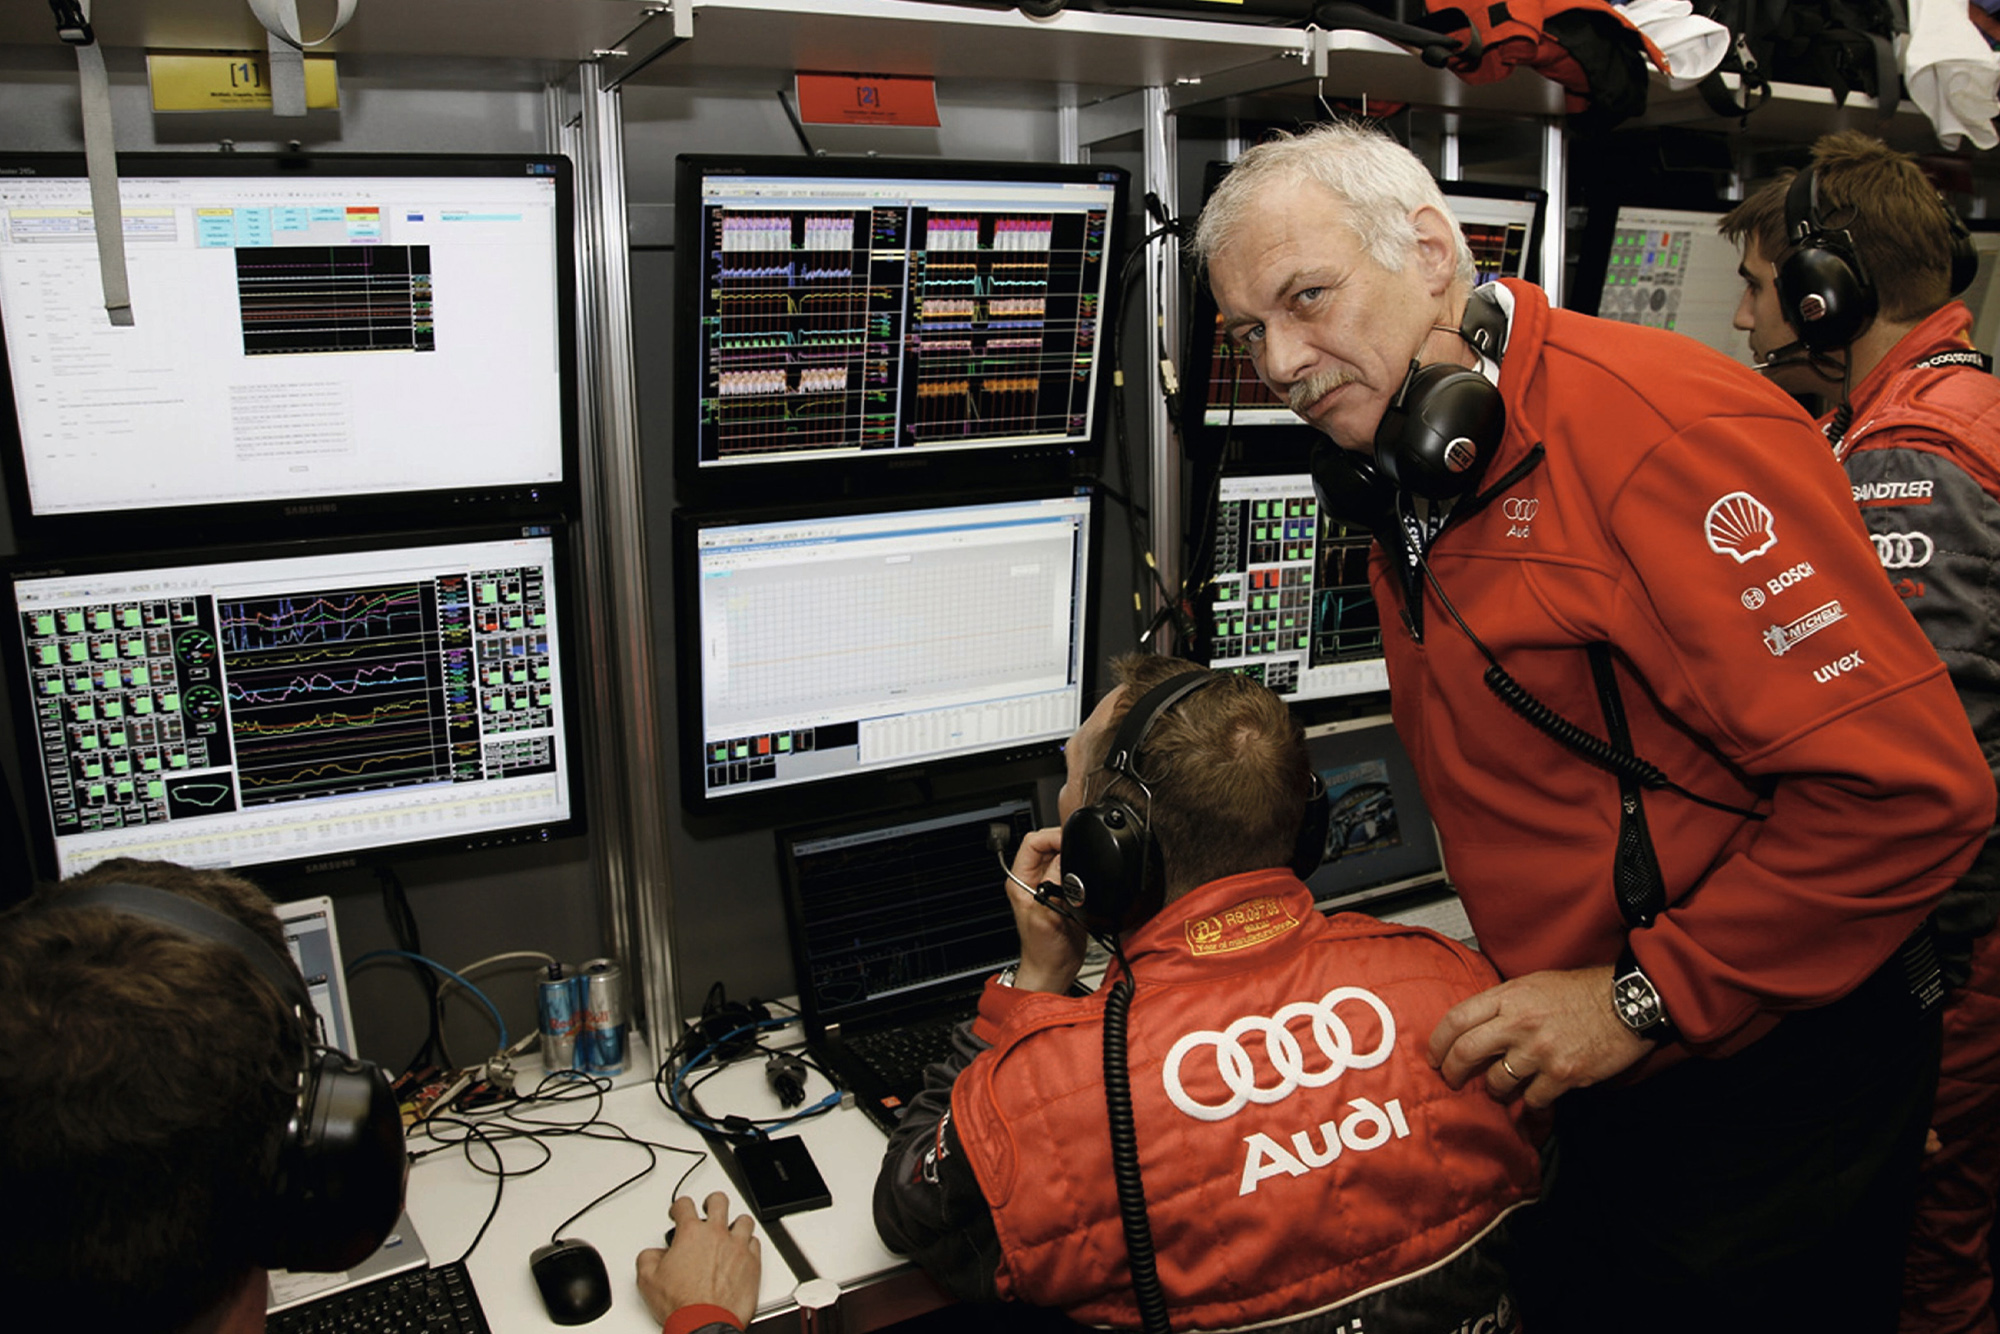 Audi's engine guru retires: Ulrich Baretzky on 3 decades of ingenuity